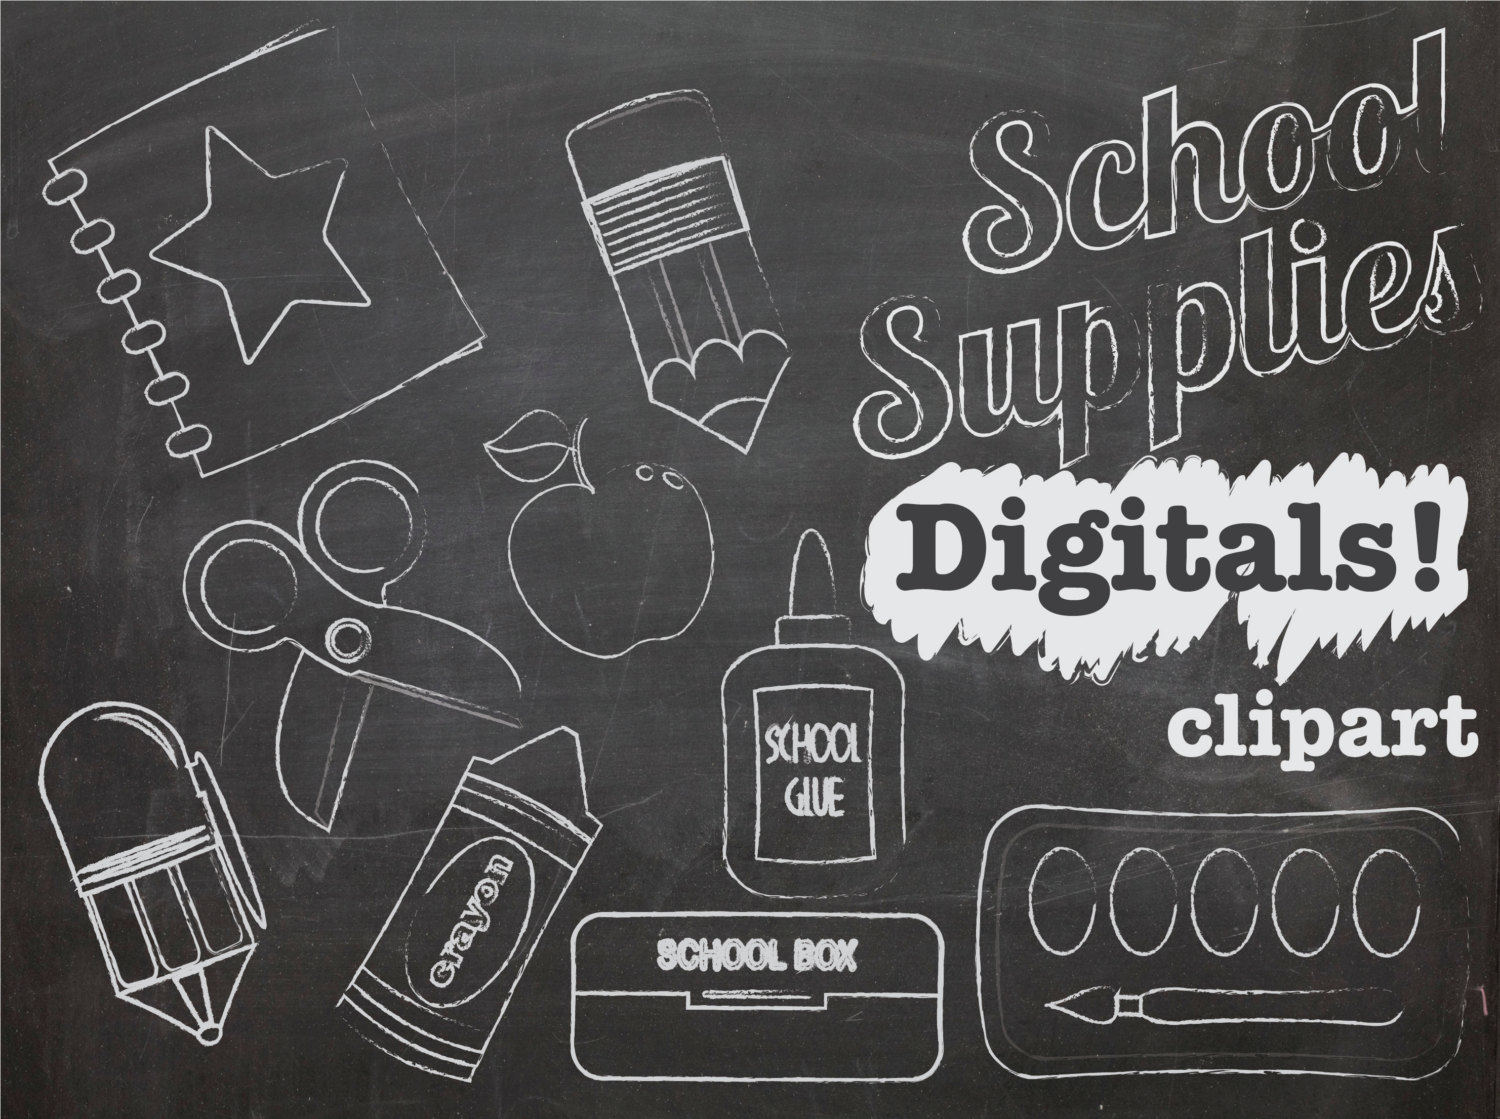 Chalkboard drawing clipart school freeuse Clip Art Chalkboard Drawing Clipart - Clipart Kid freeuse